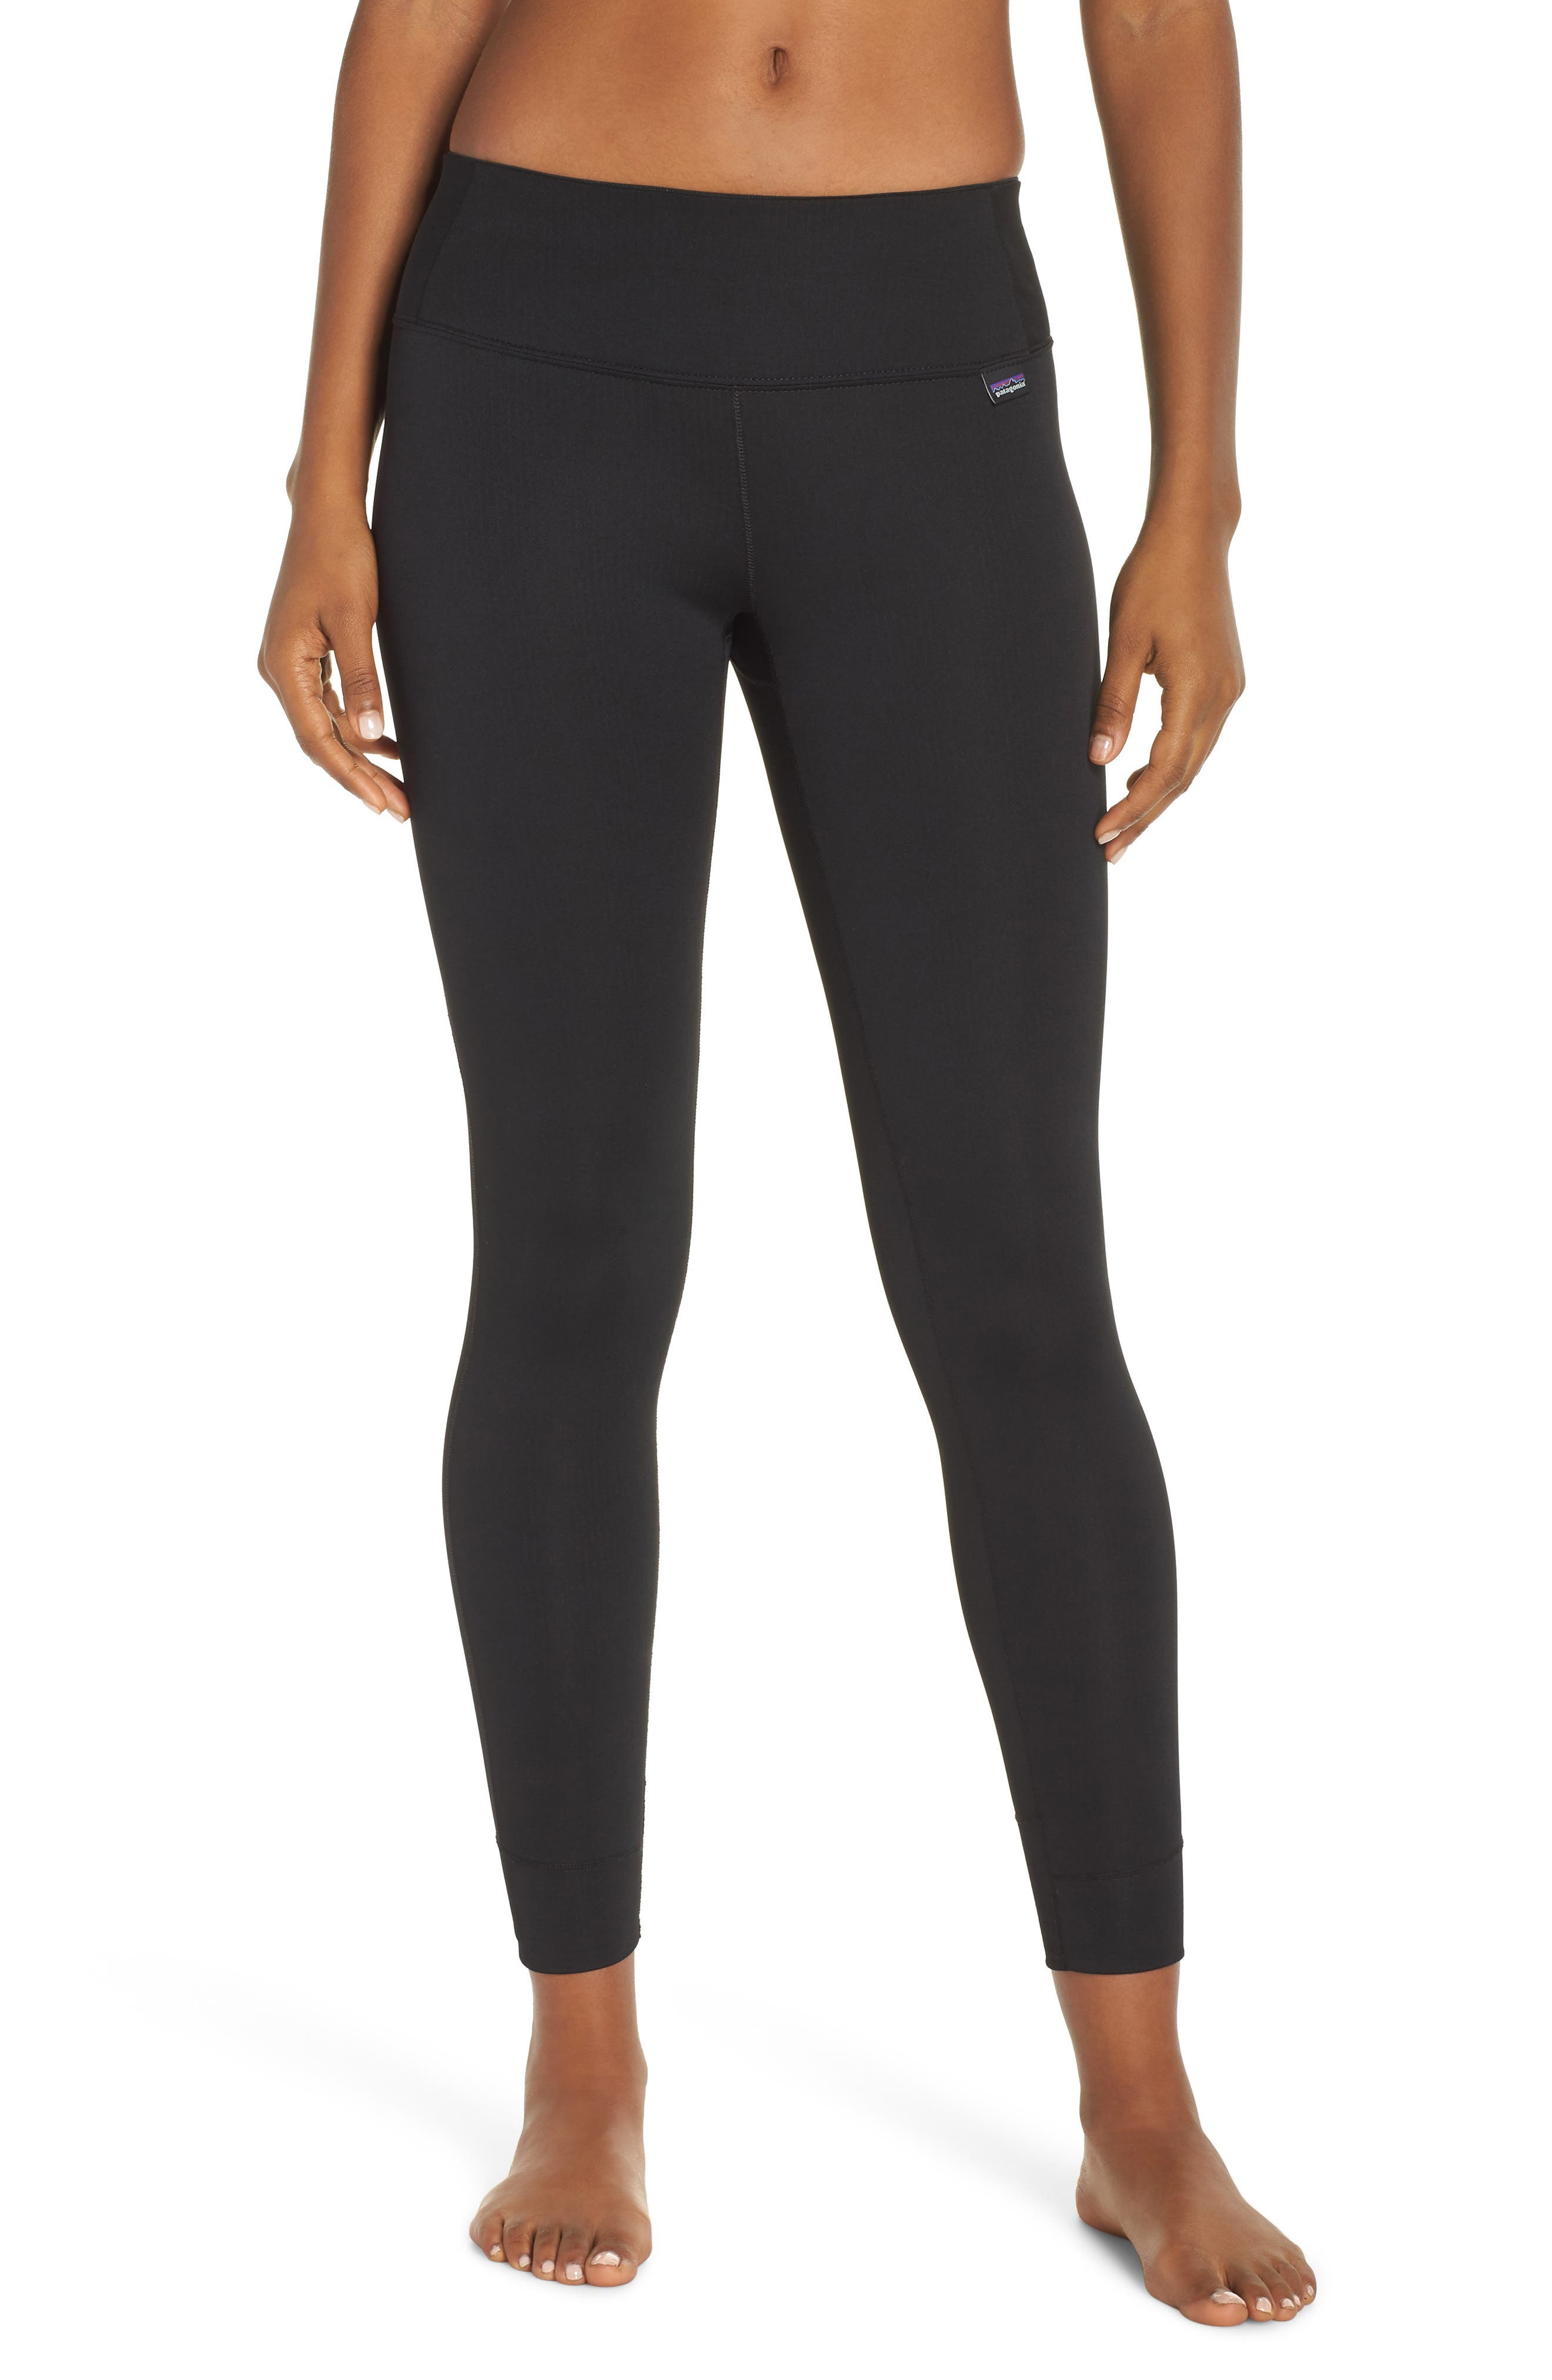 Capilene Midweight Base Layer Tights,                         Main,                         color, BLACK